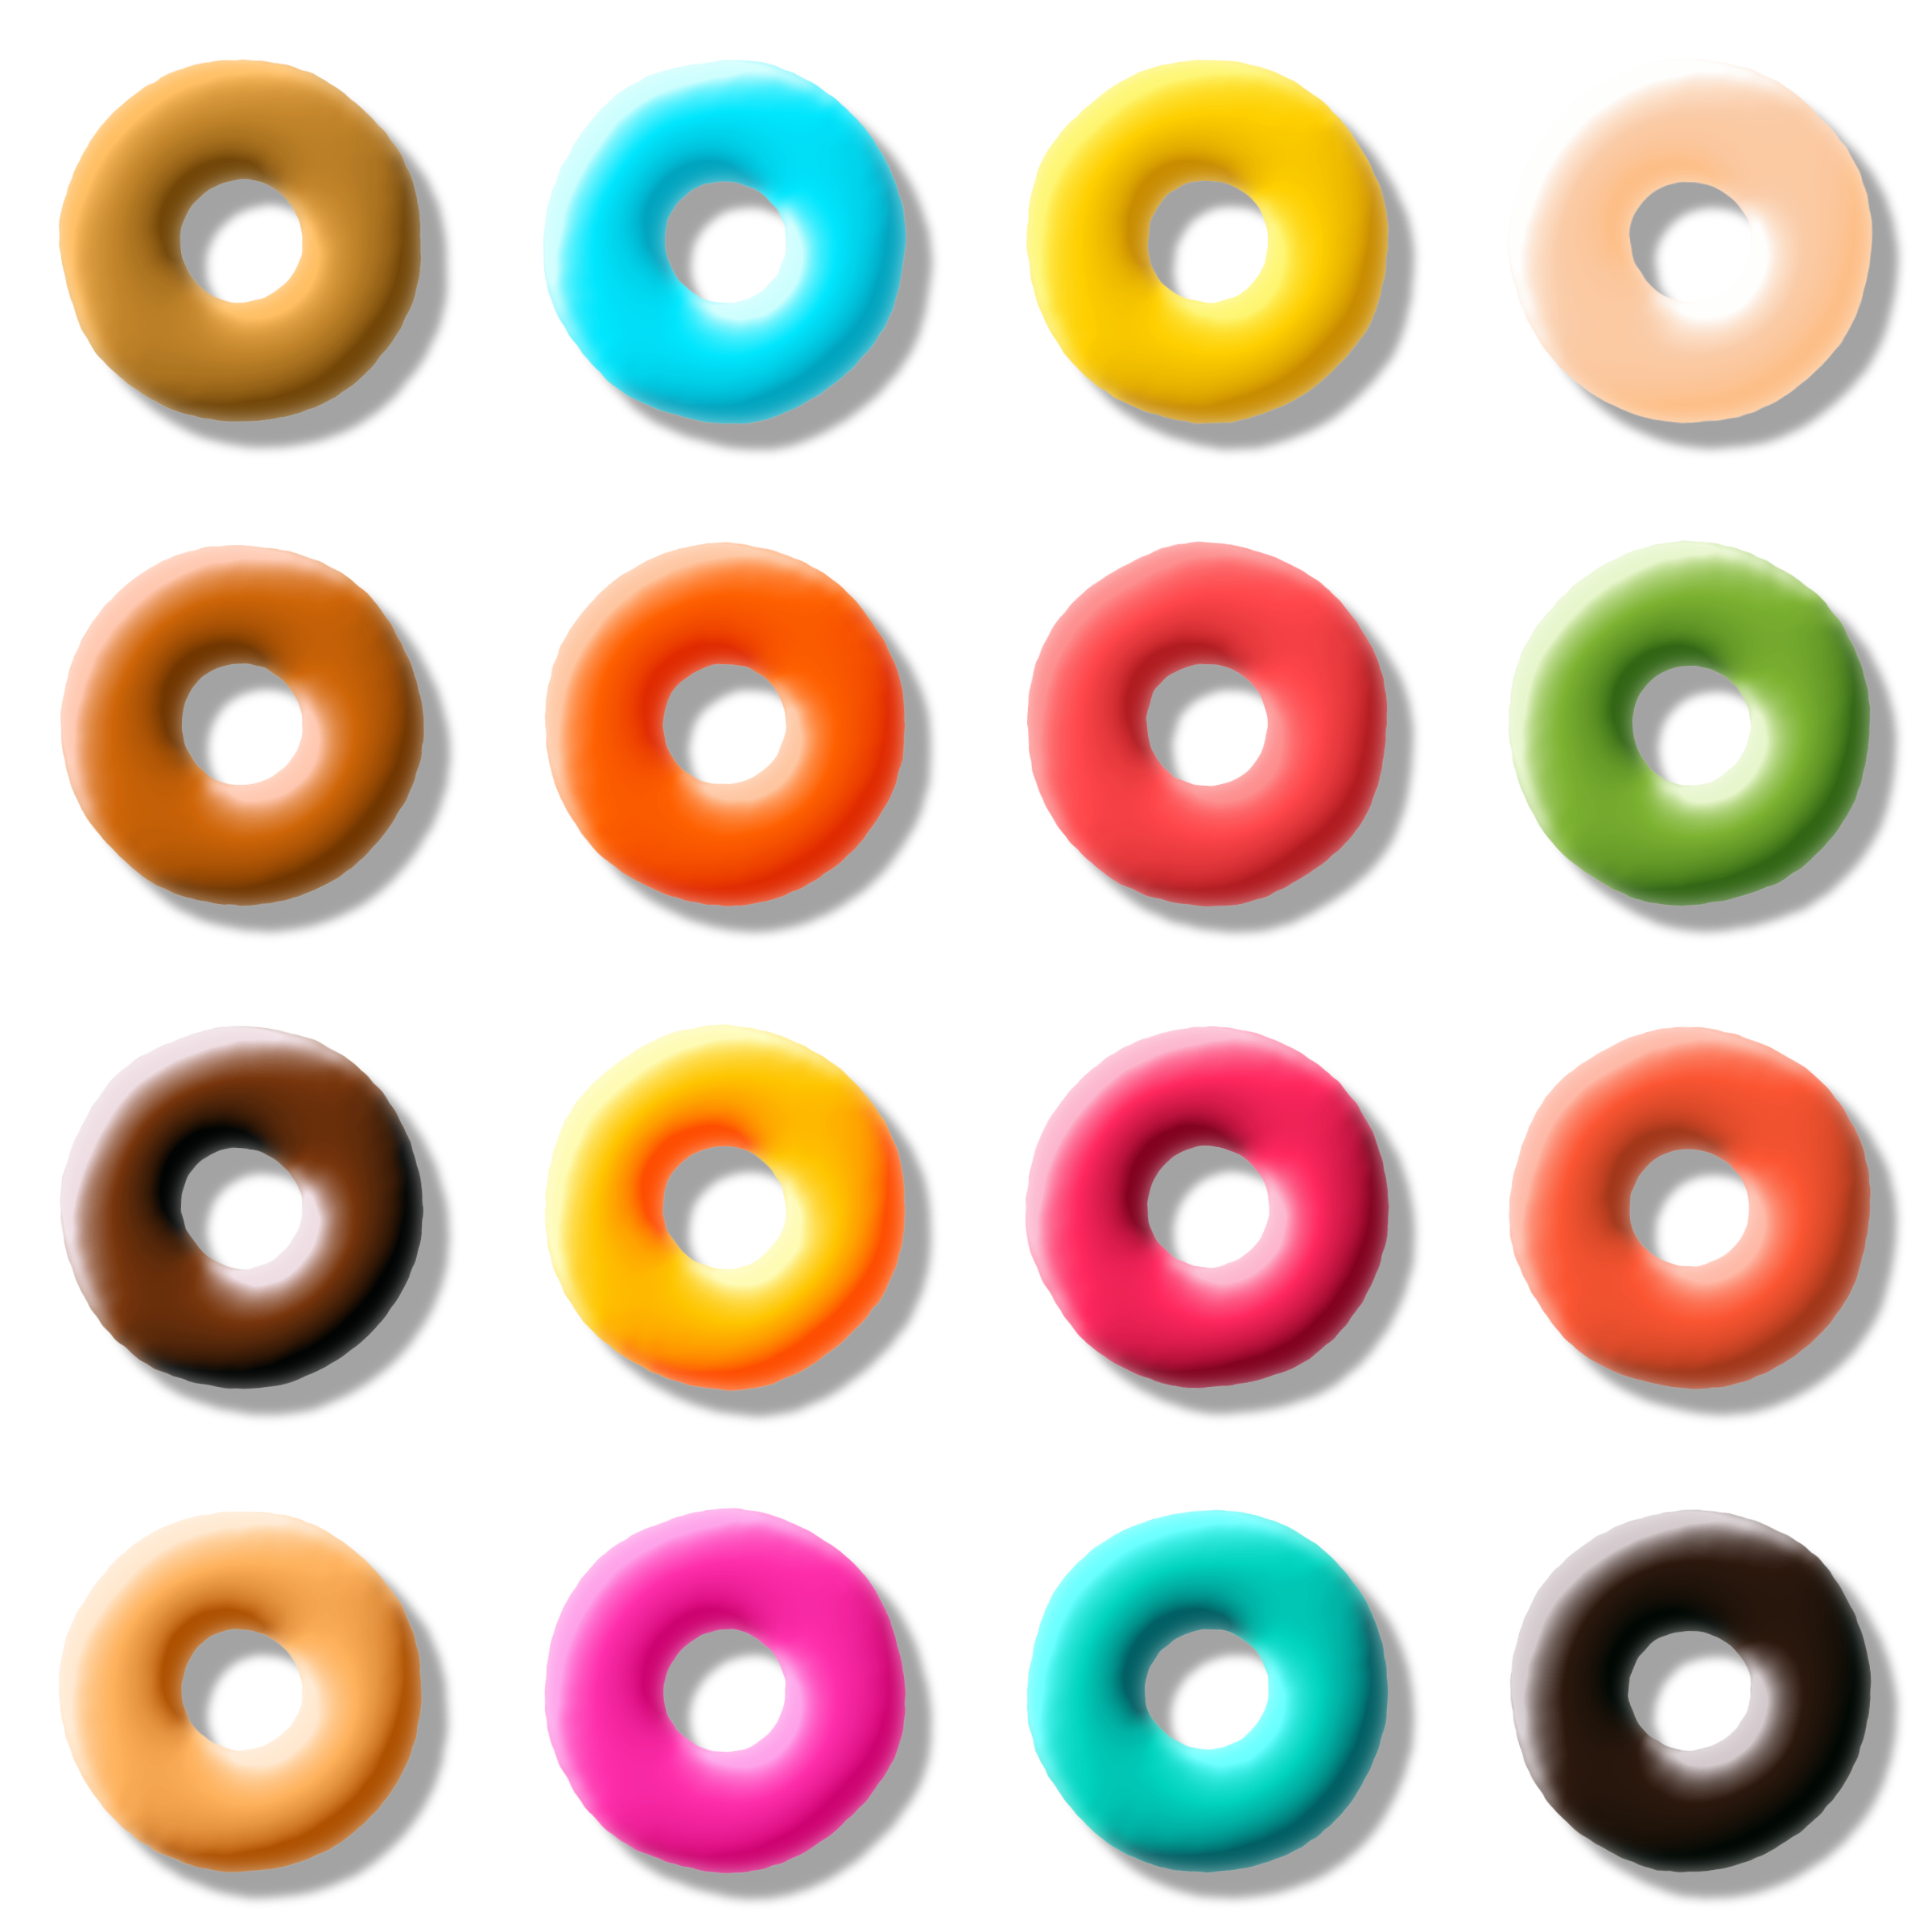 donut pack by Lazur URH